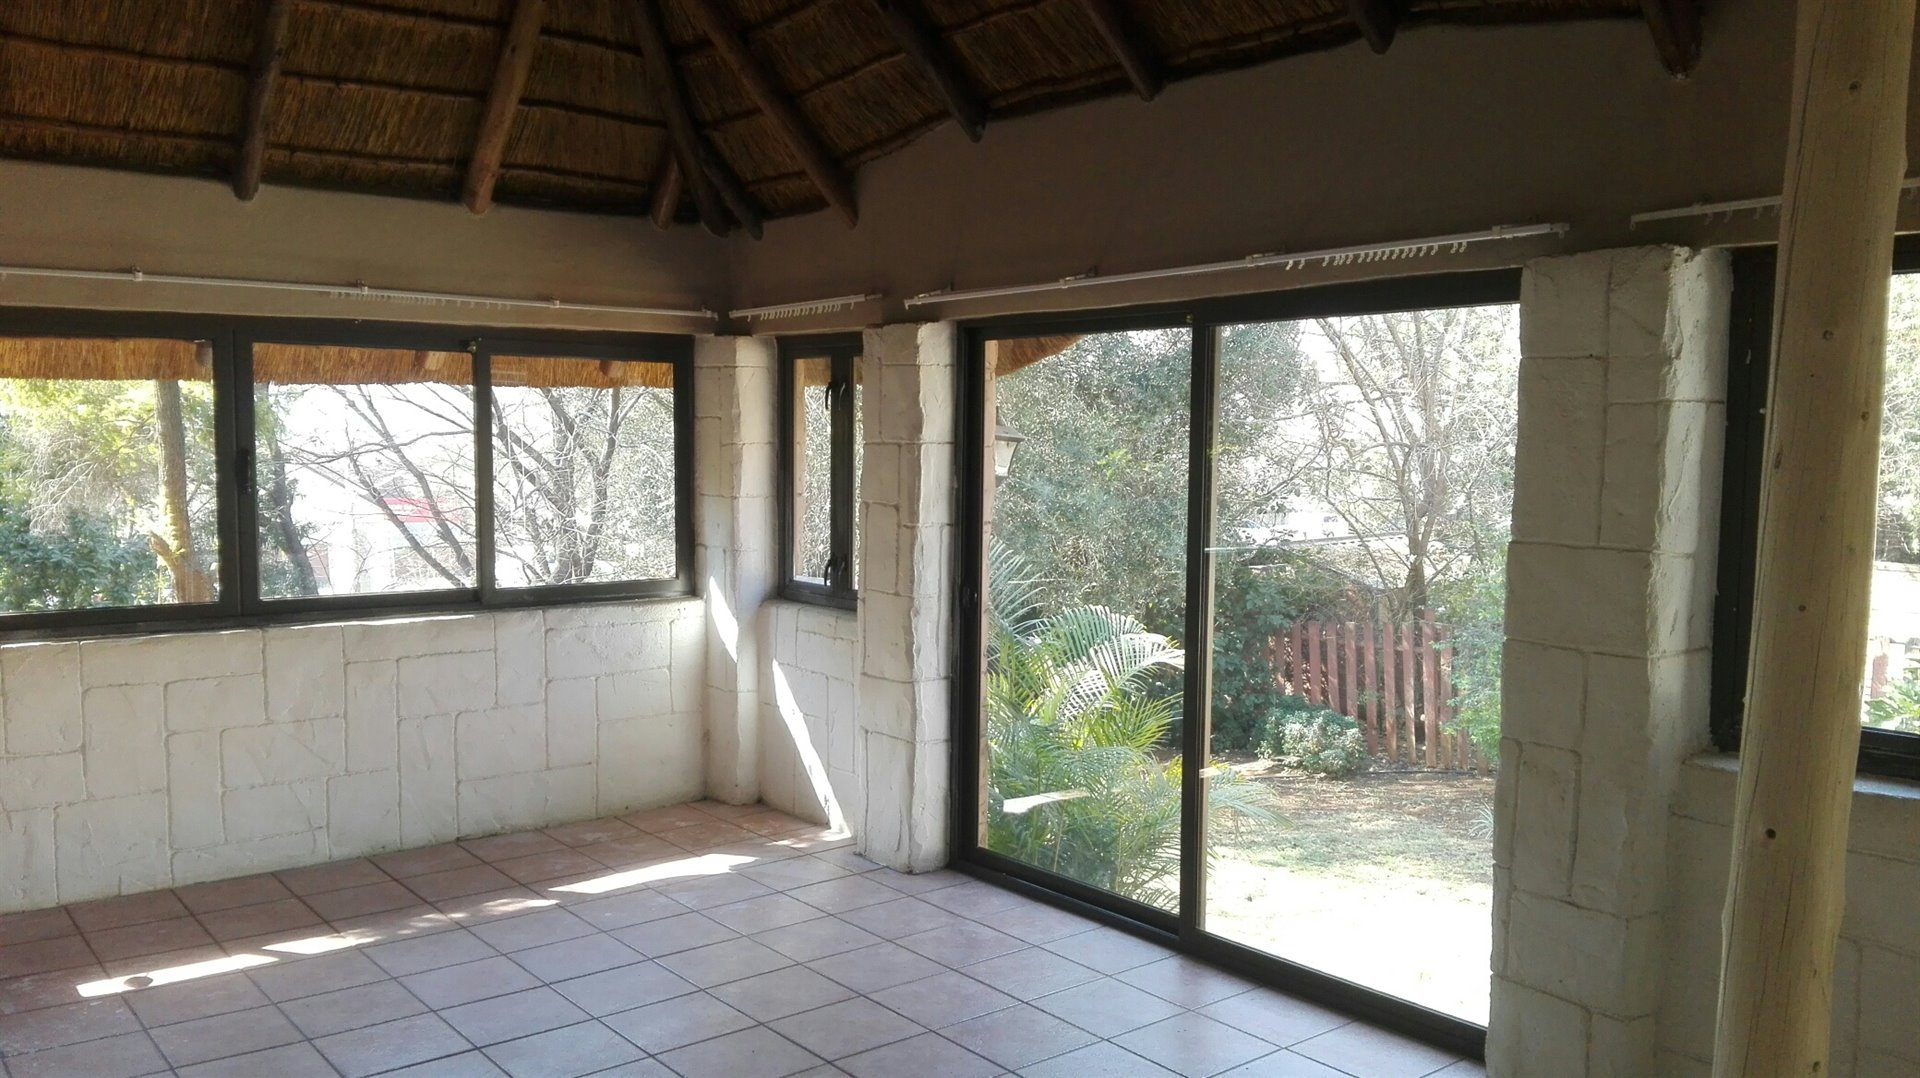 Zwartkop property for sale. Ref No: 13508772. Picture no 7